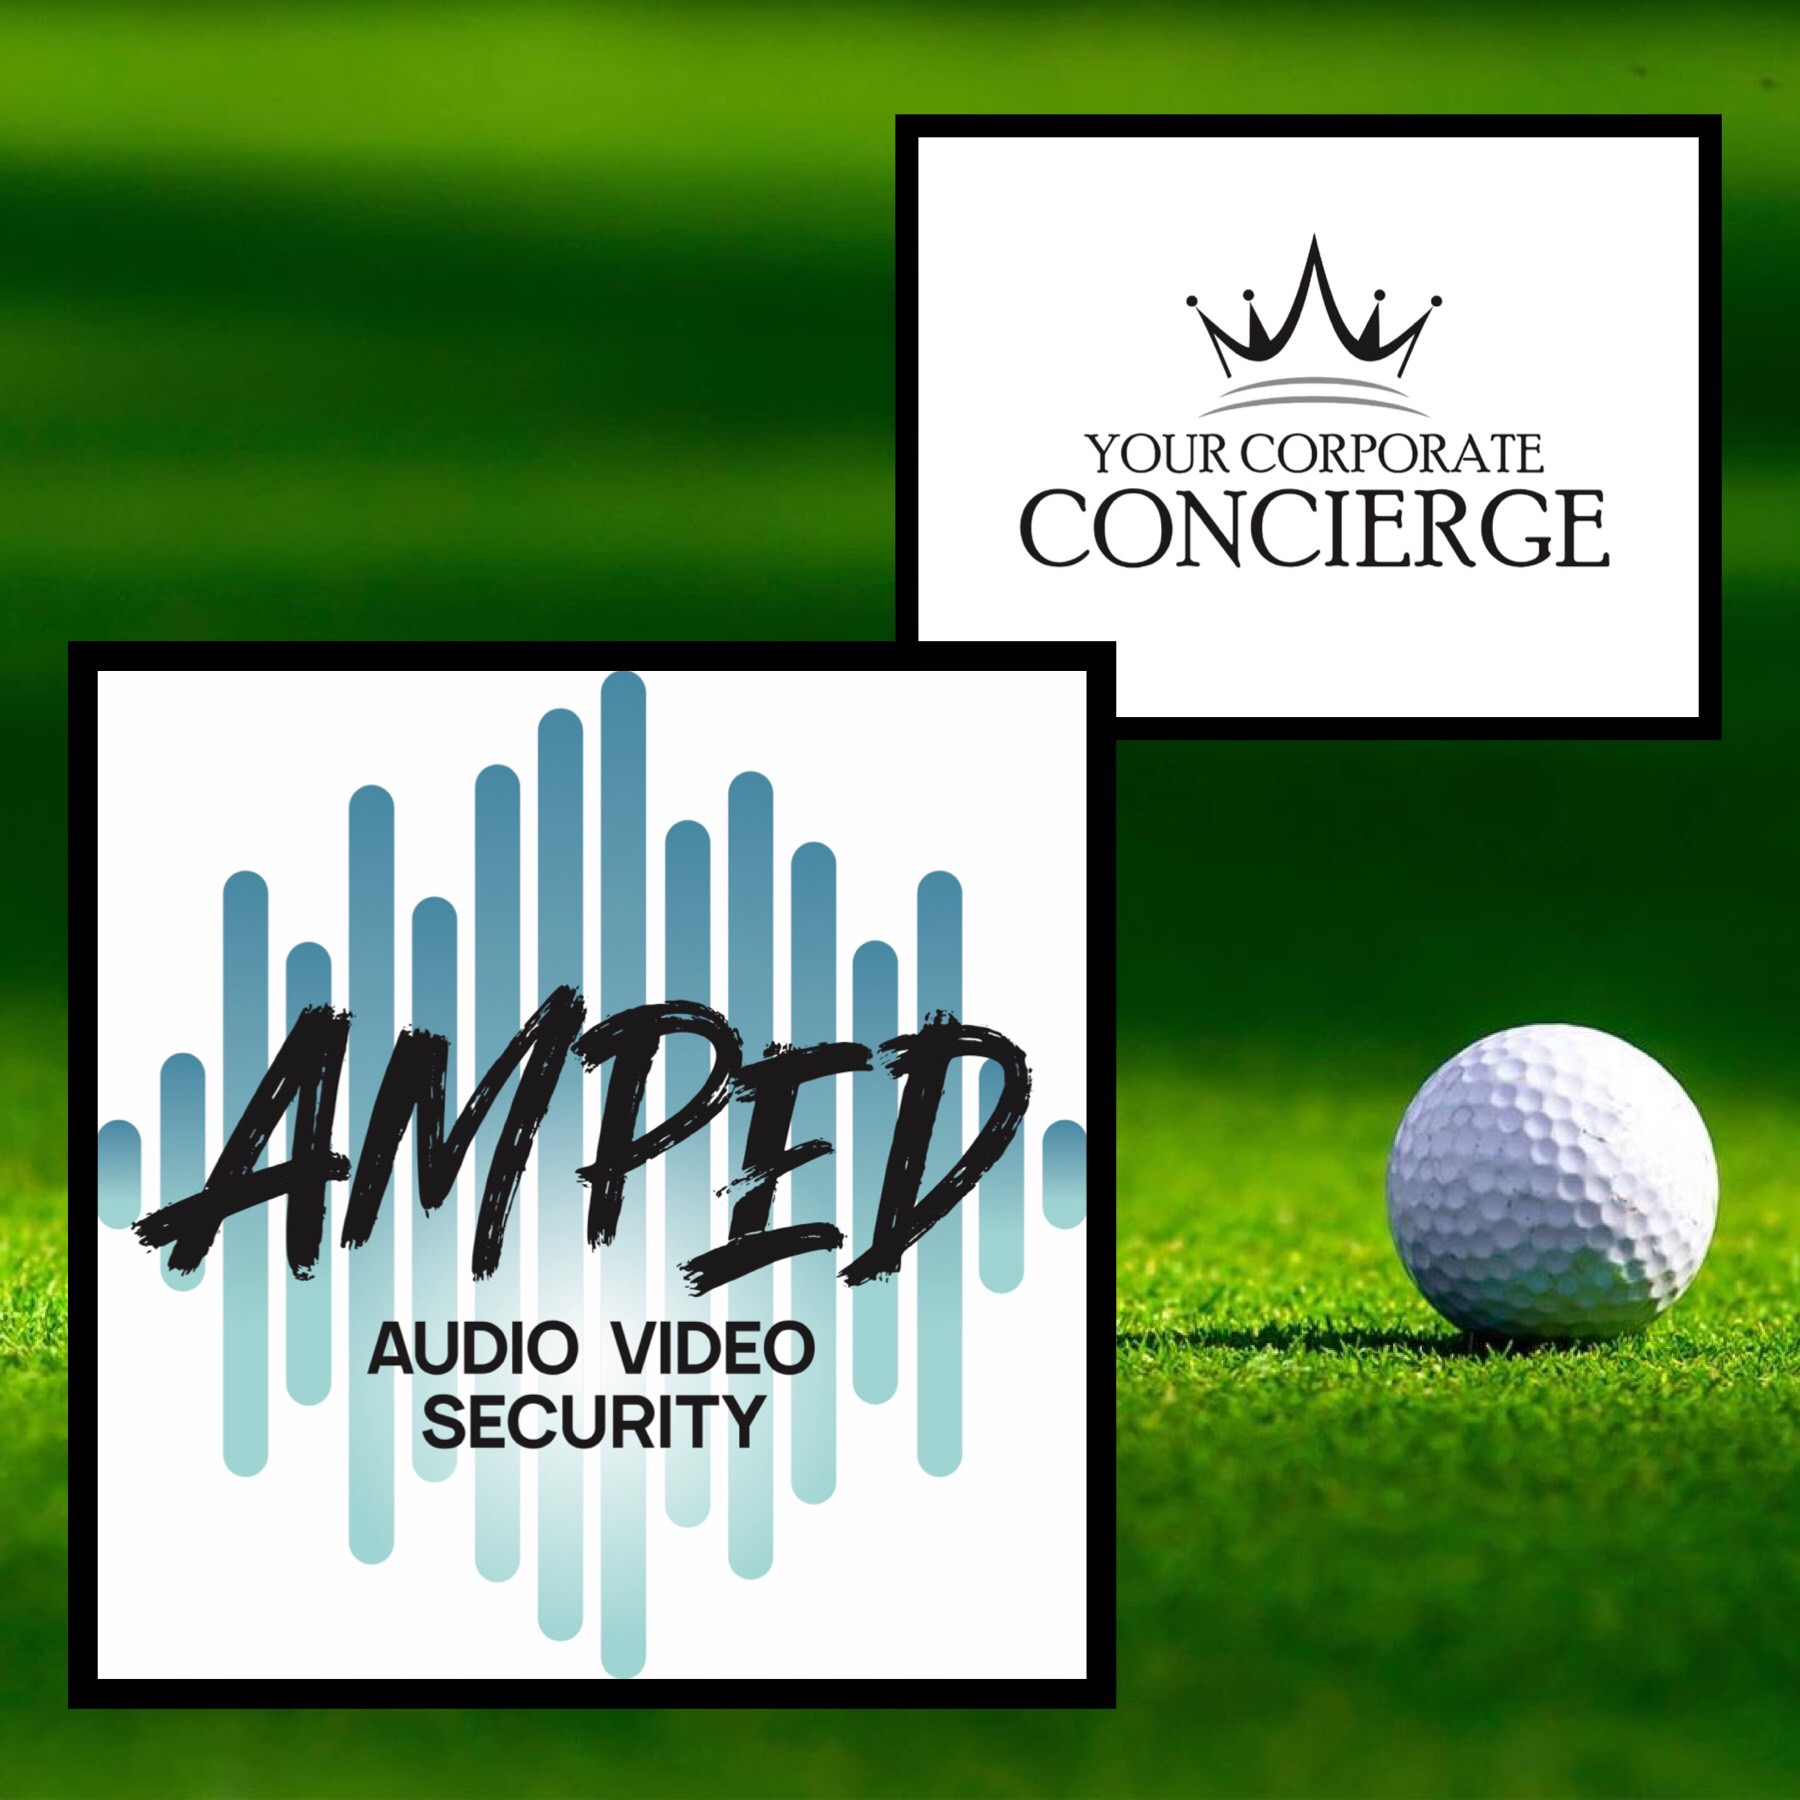 So excited to represent Amped Audio Video next Thursday at the NARI Annual Golf Outing!